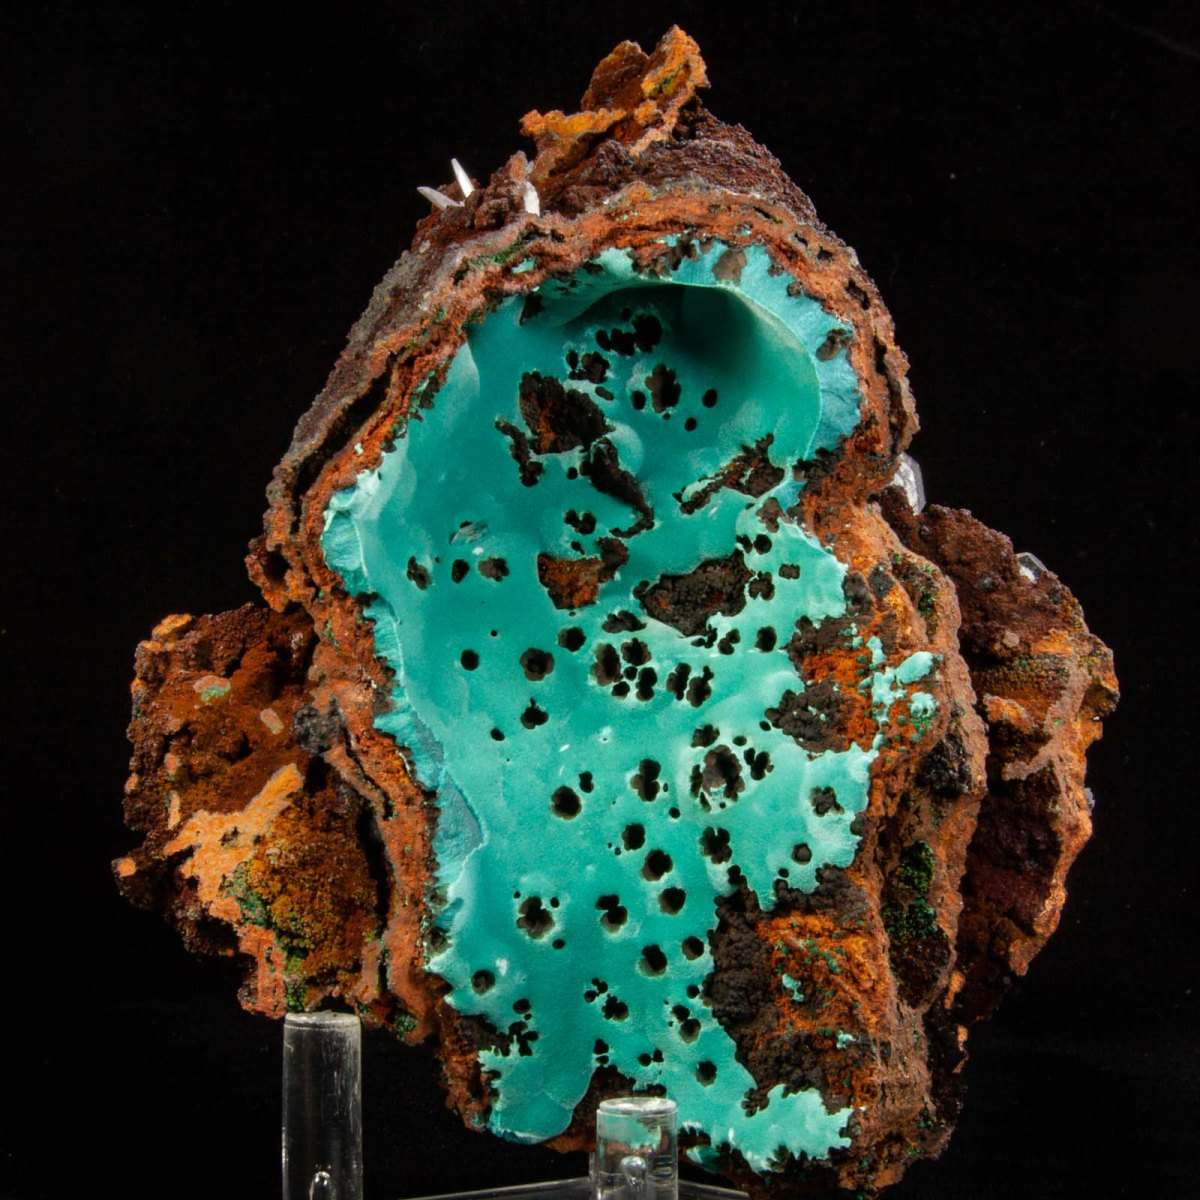 Rosasite with Hemimorphite and Calcite